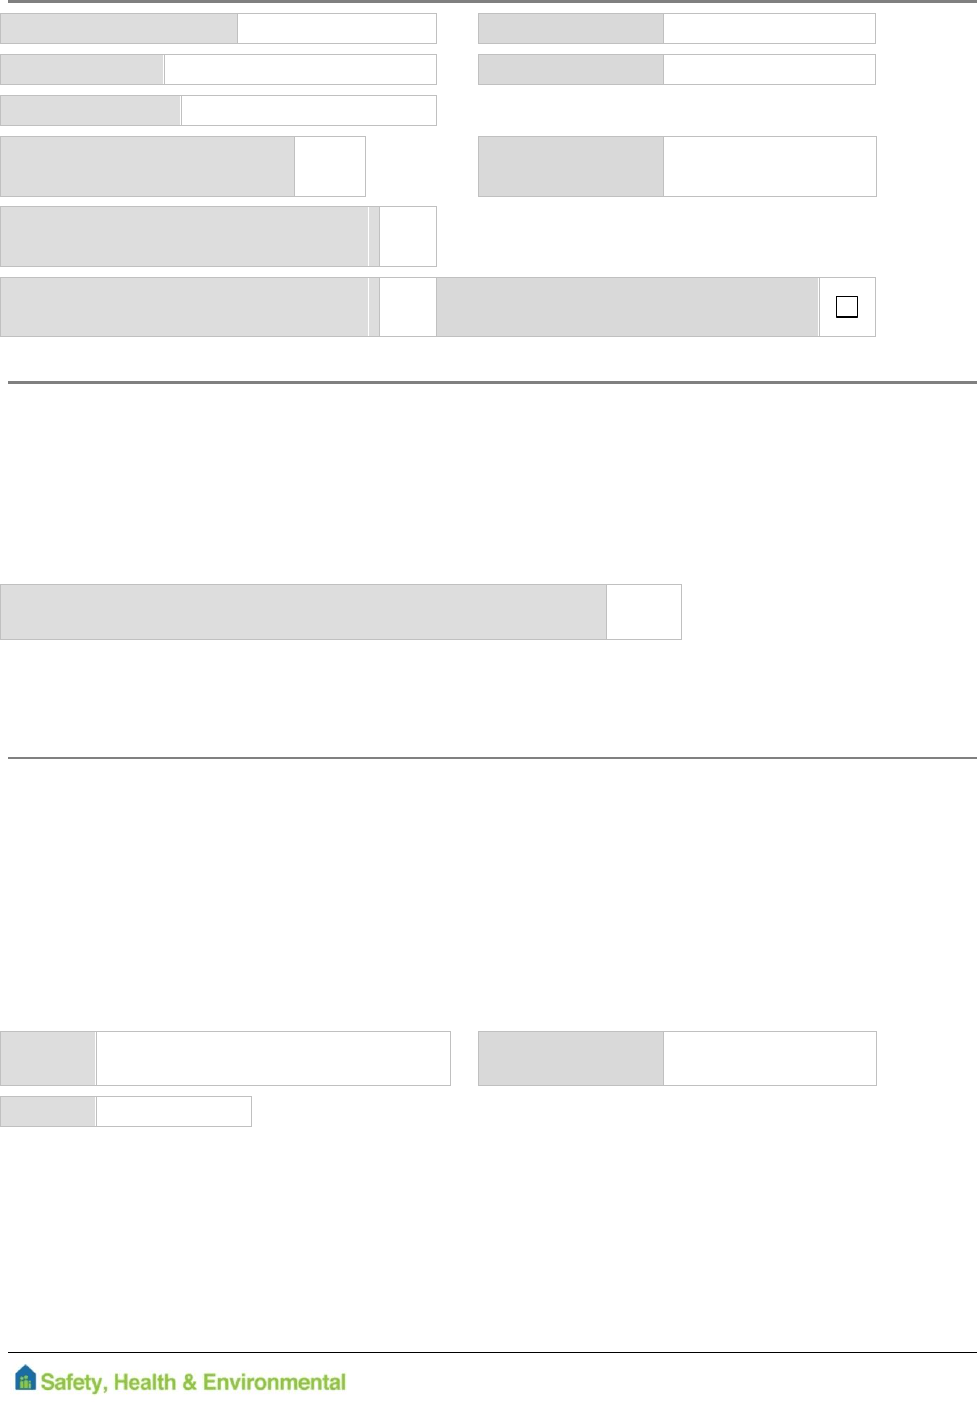 Blank Drivers Declaration Form Free Download